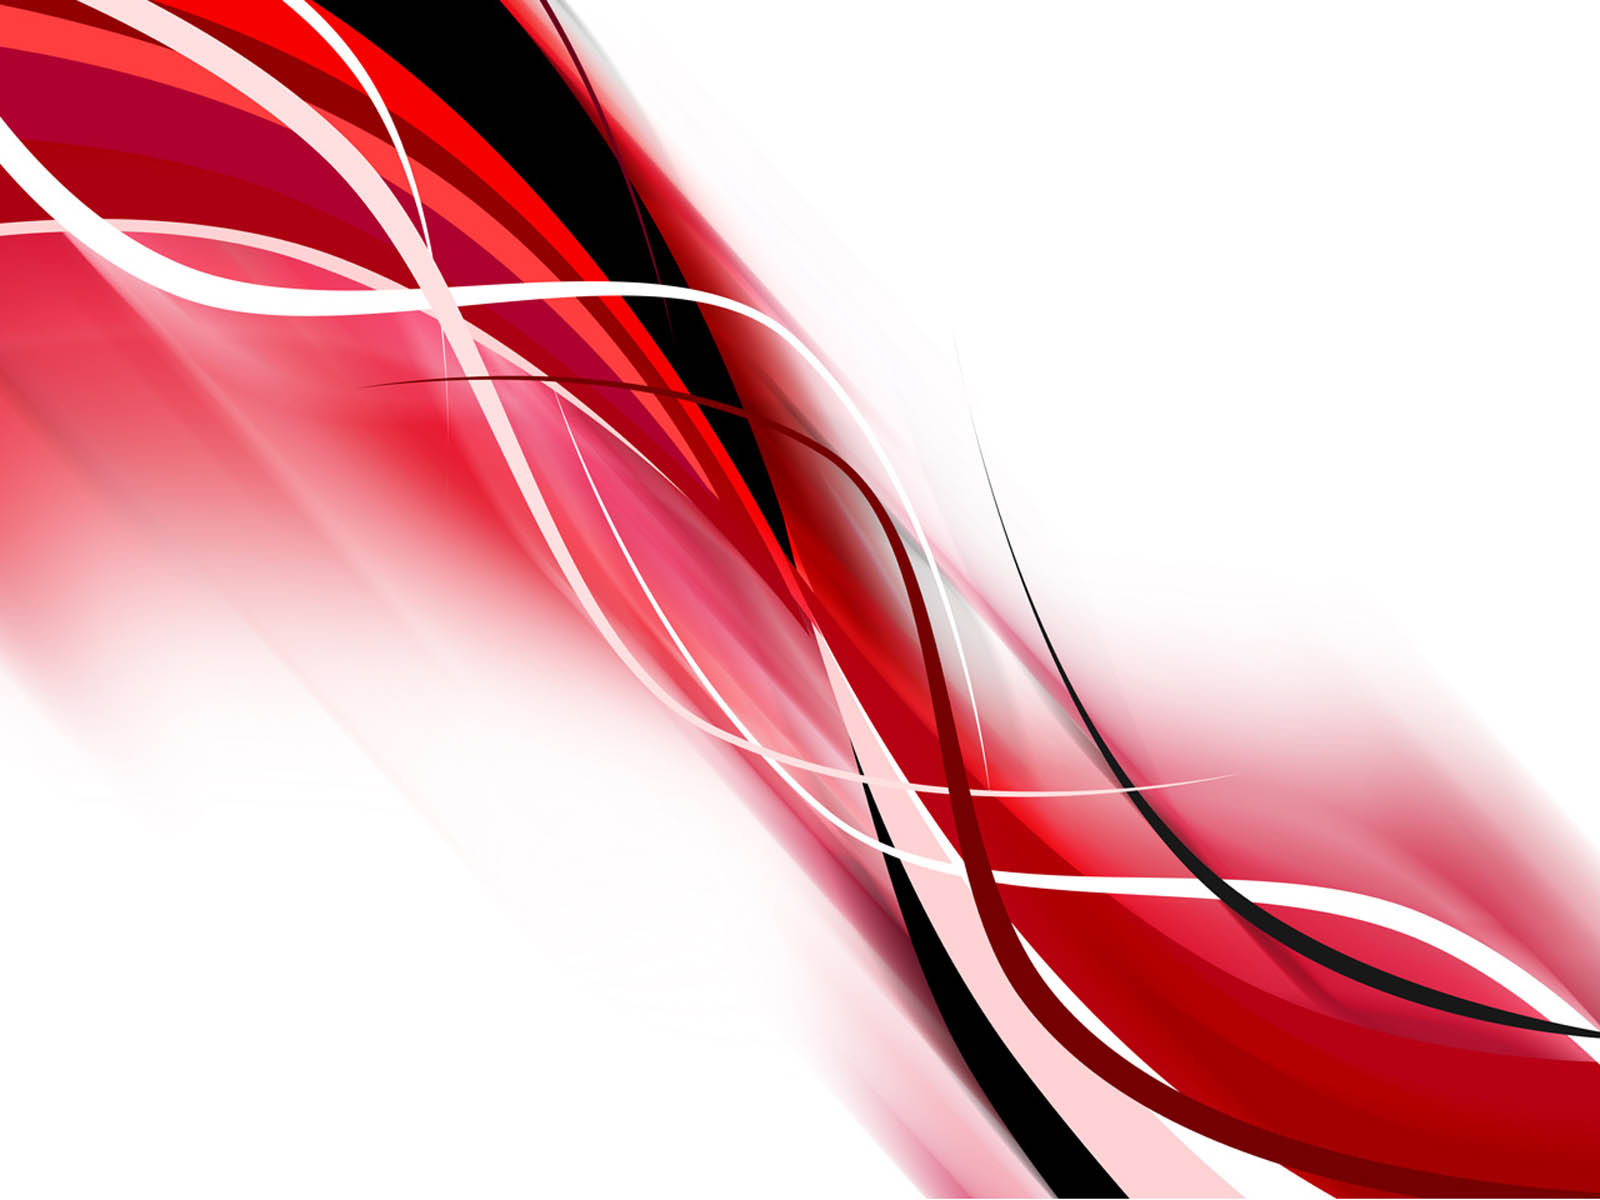 Tag: Abstract Red Wallpapers, Backgrounds, Photos, Pictures, and ...